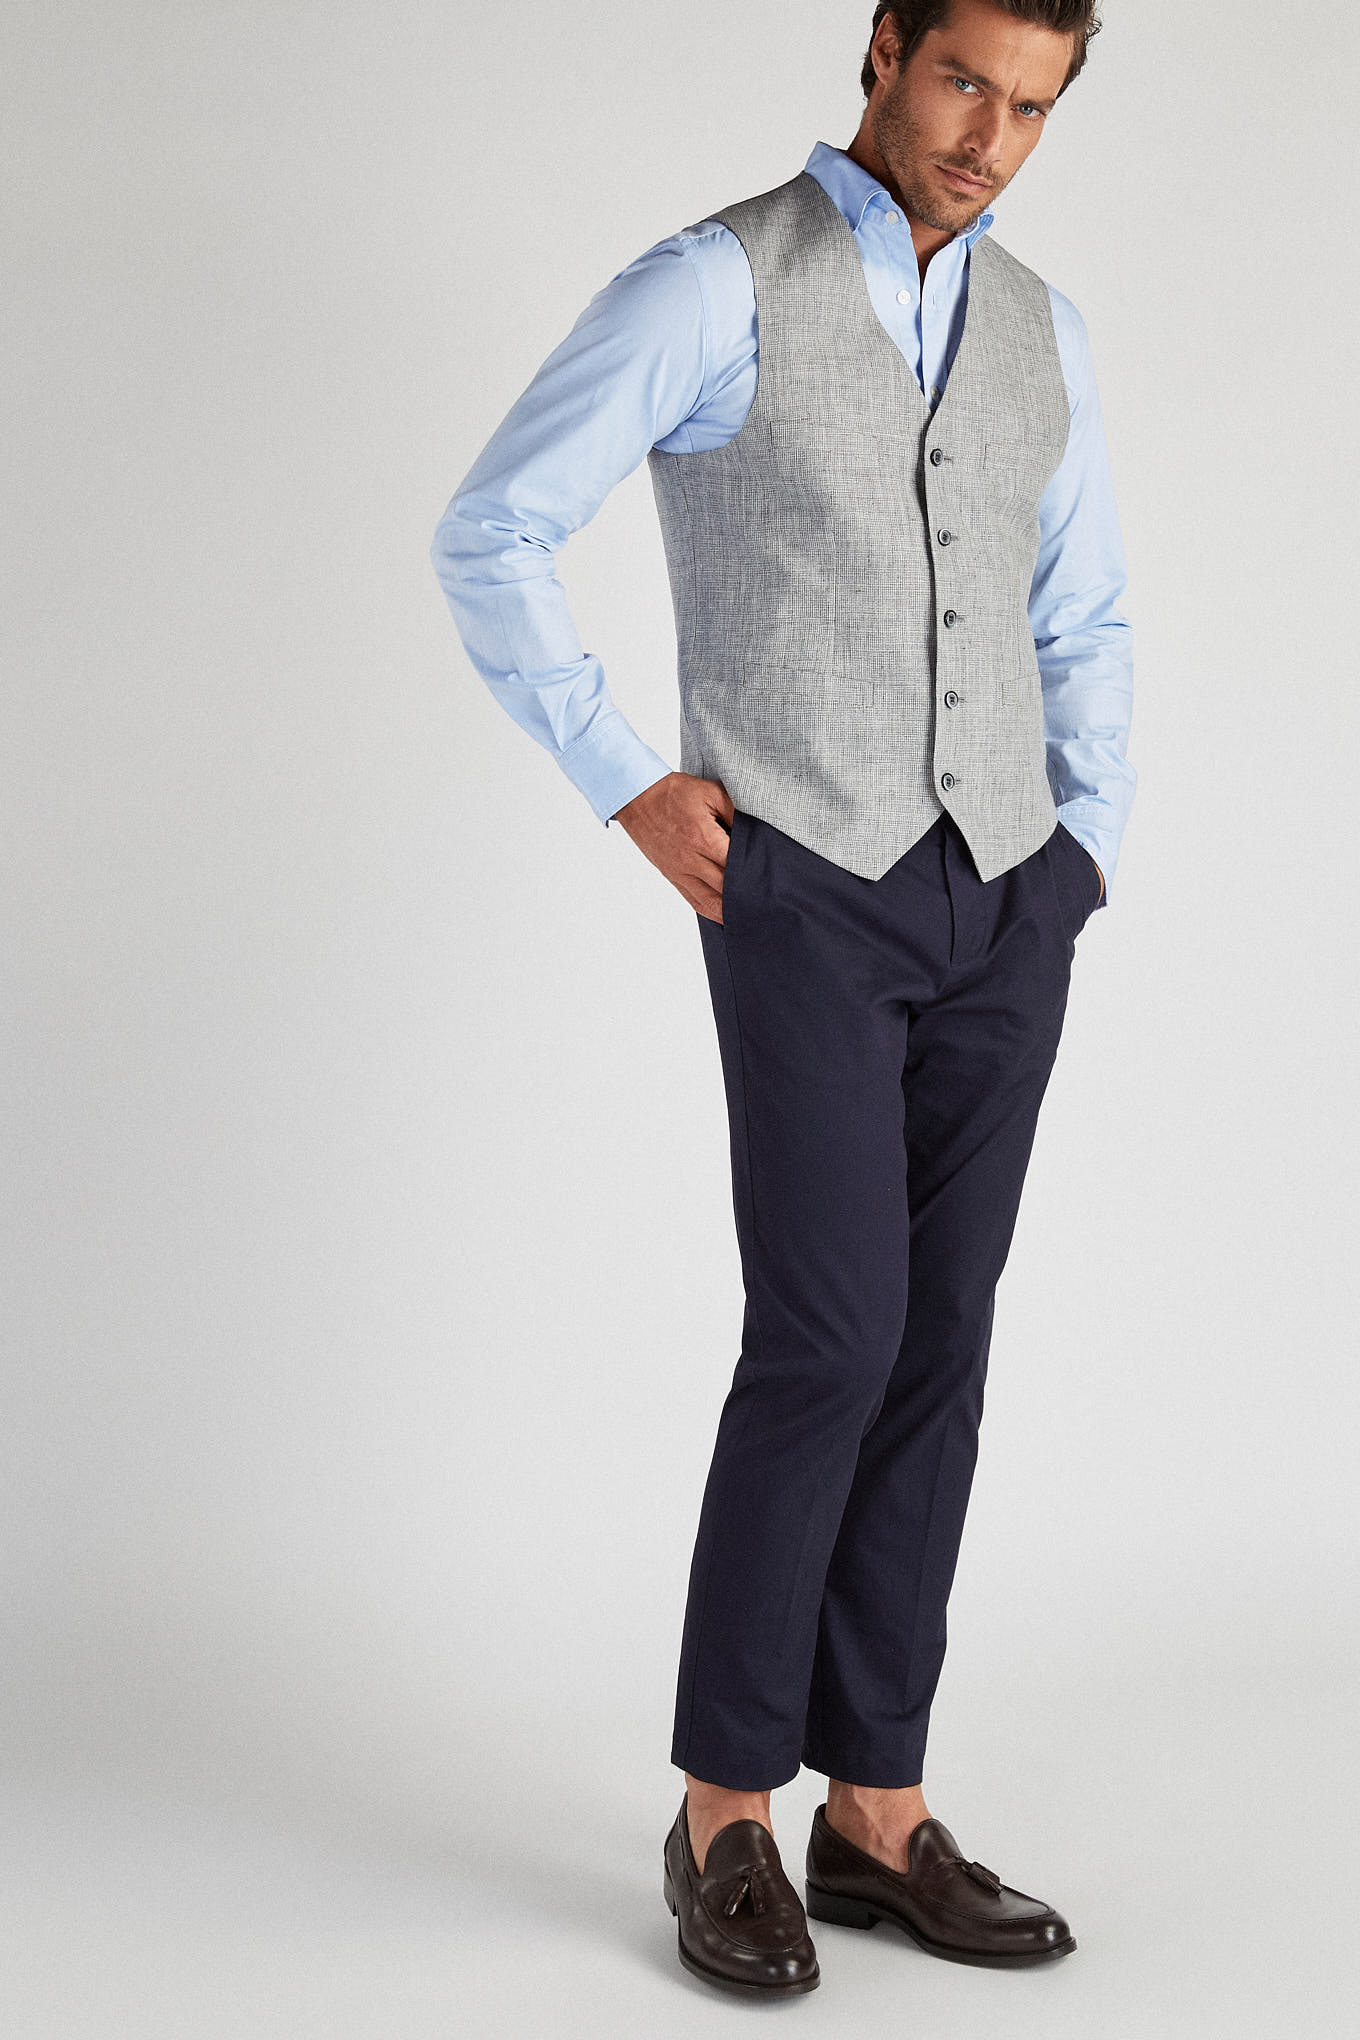 Waist Coat Light Grey Casual Man